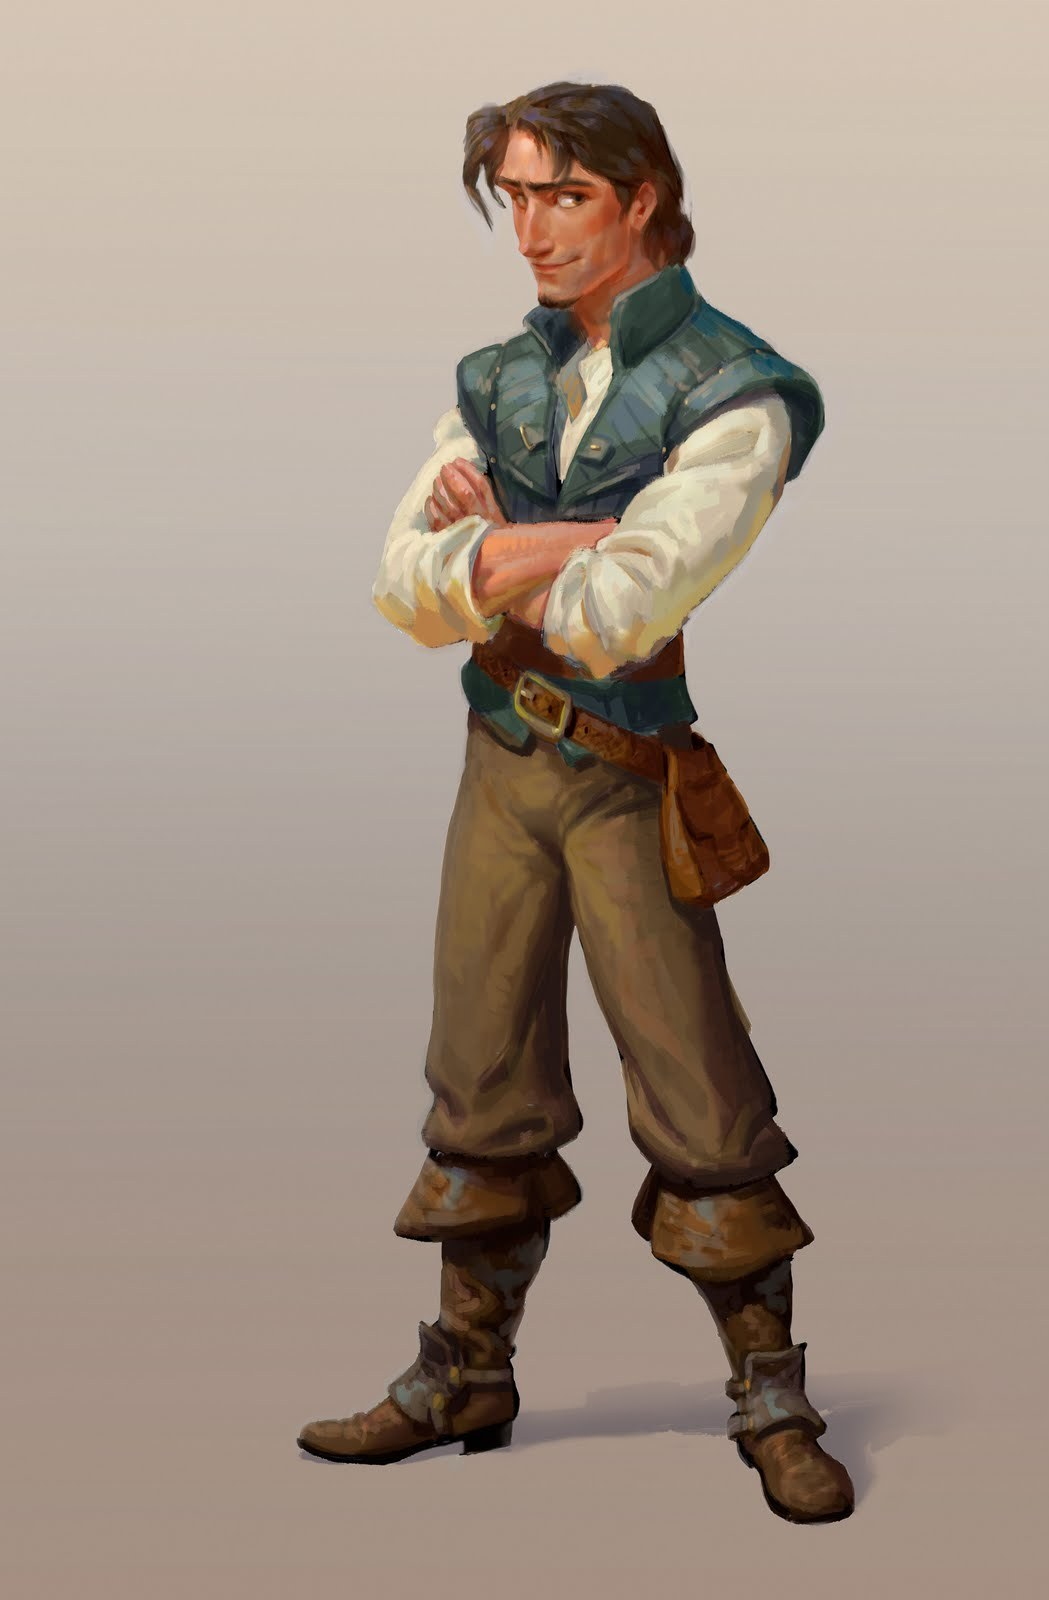 Flynn Rider Jin Kim (drawing), Dan Cooper (digital), Dave Goetz (art direction) | Digital